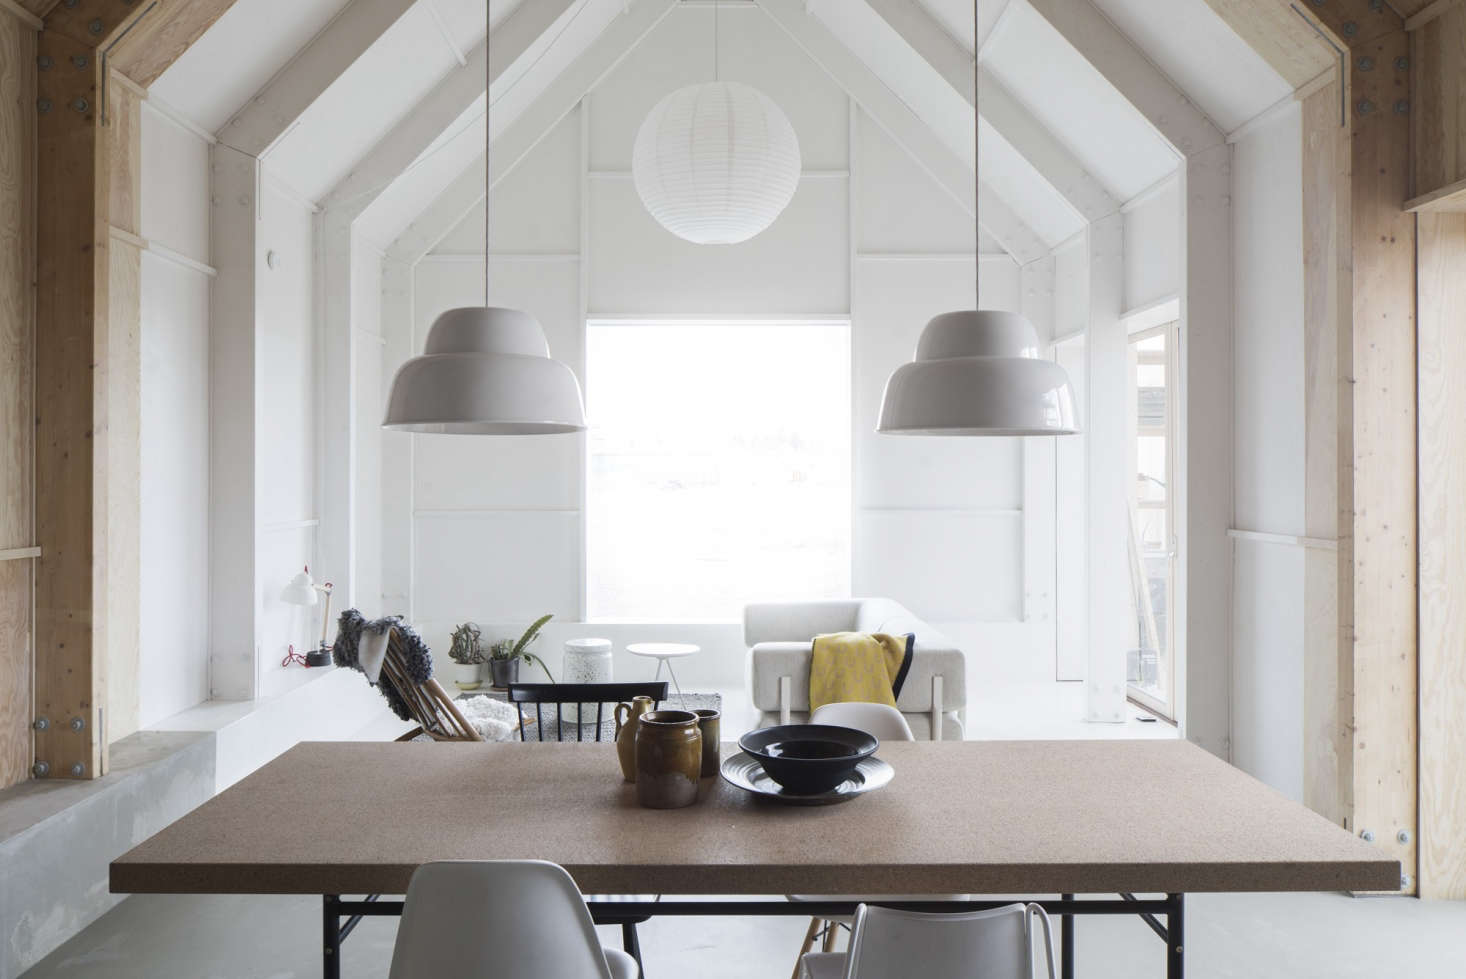 A Cost-Conscious House in Sweden That's a Pinterest Sensation